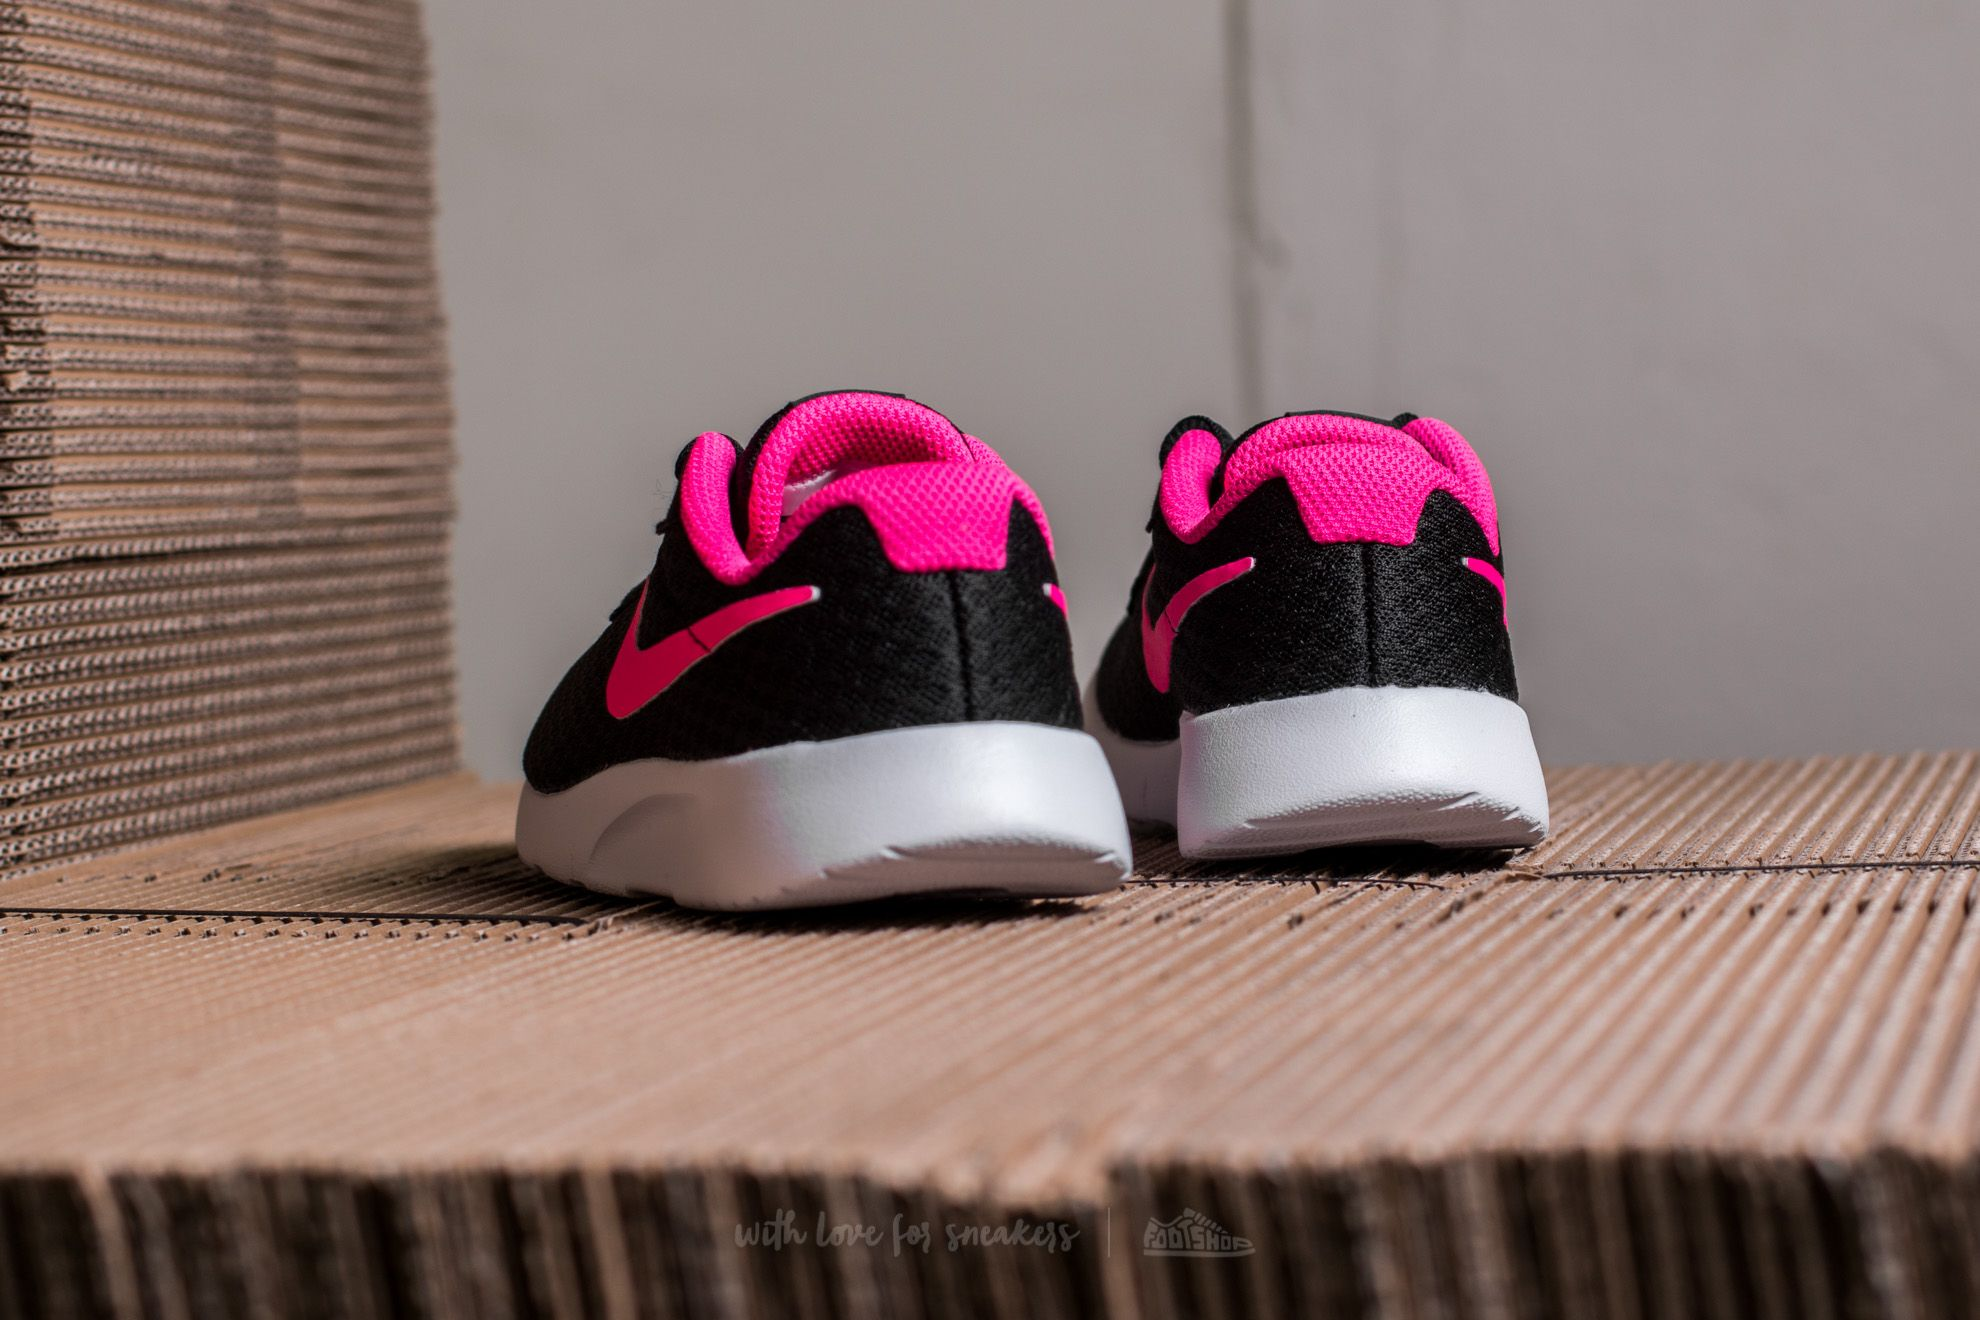 617d68792ad4 ... authentic nike tanjun ps black hyper pink white at a great price 27  b9da4 2022c